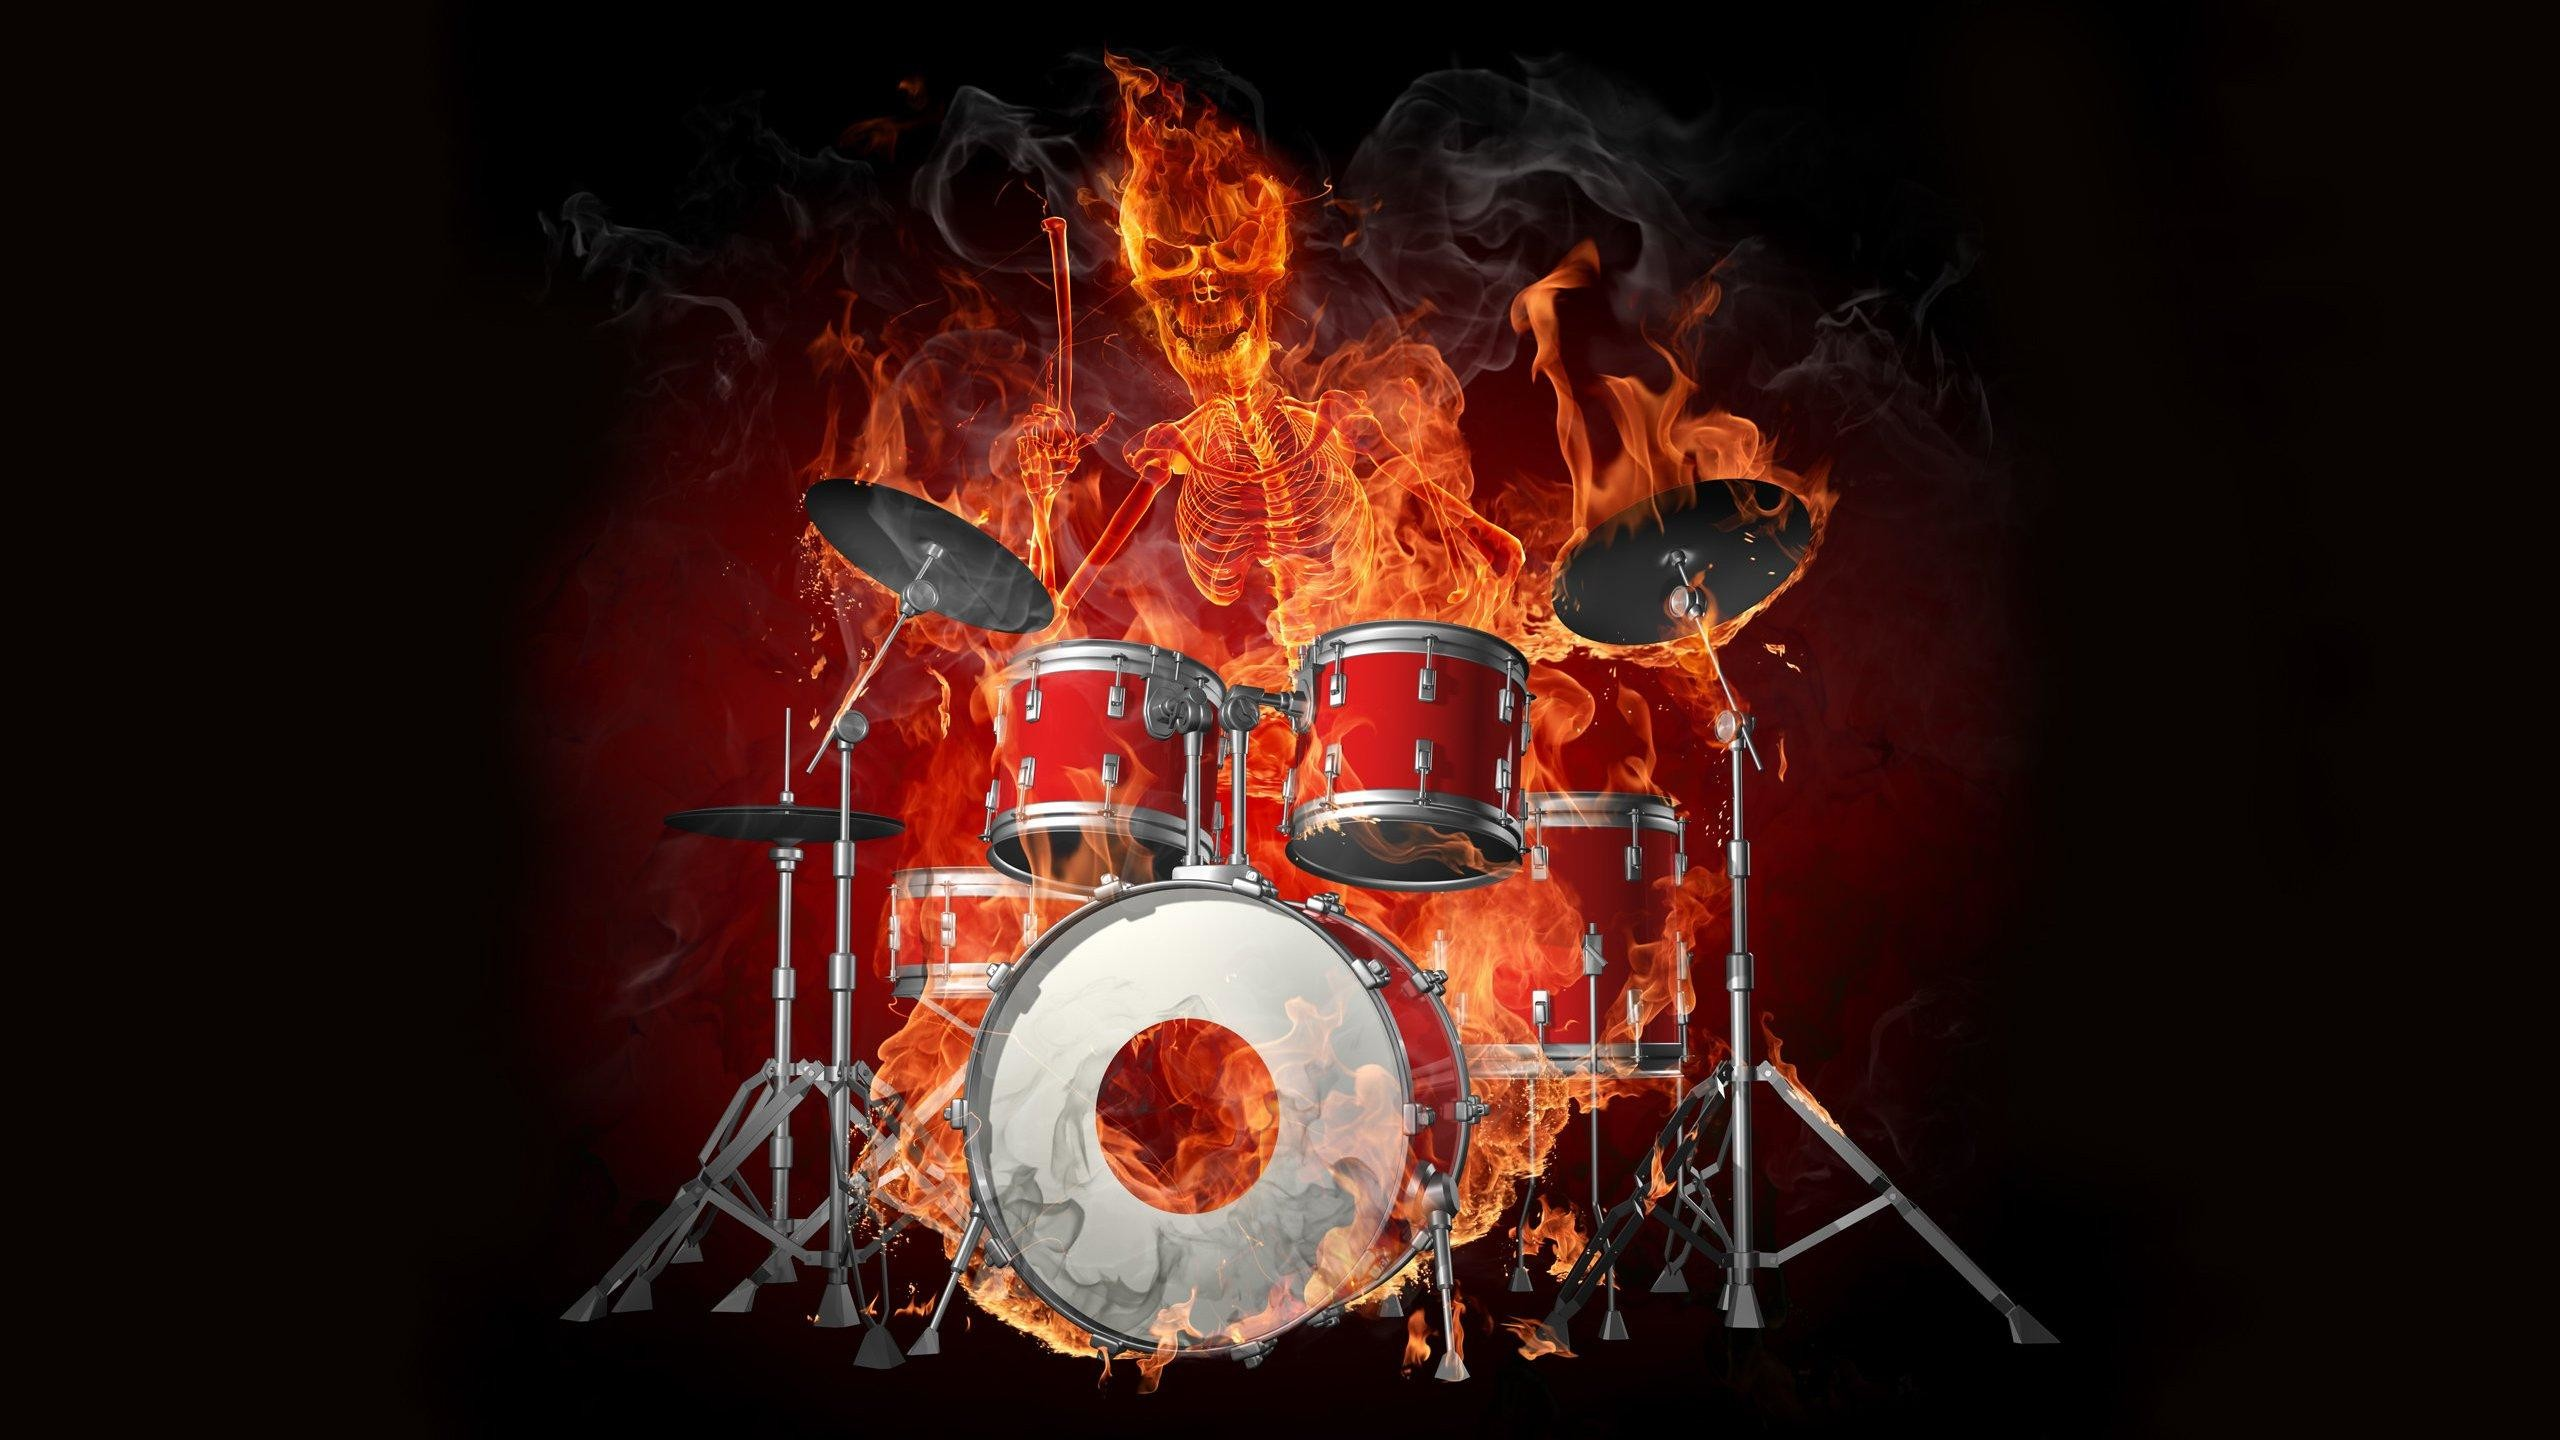 """AWESOME SKULLS """" N """" STUFF images drums fire demon skull stuff hd wallpaper  HD wallpaper and background photos"""